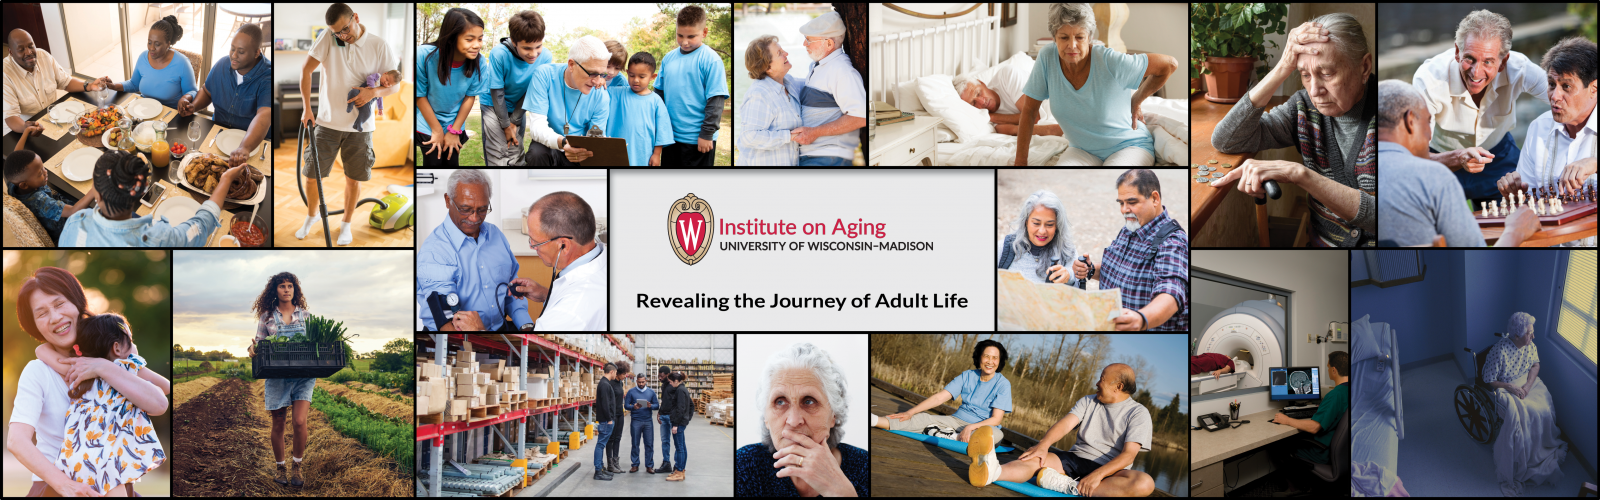 Collage of images revealing the journey of adult life including volunteering, gathering with friends, loneliness, work, doctor visits, play, exercise.